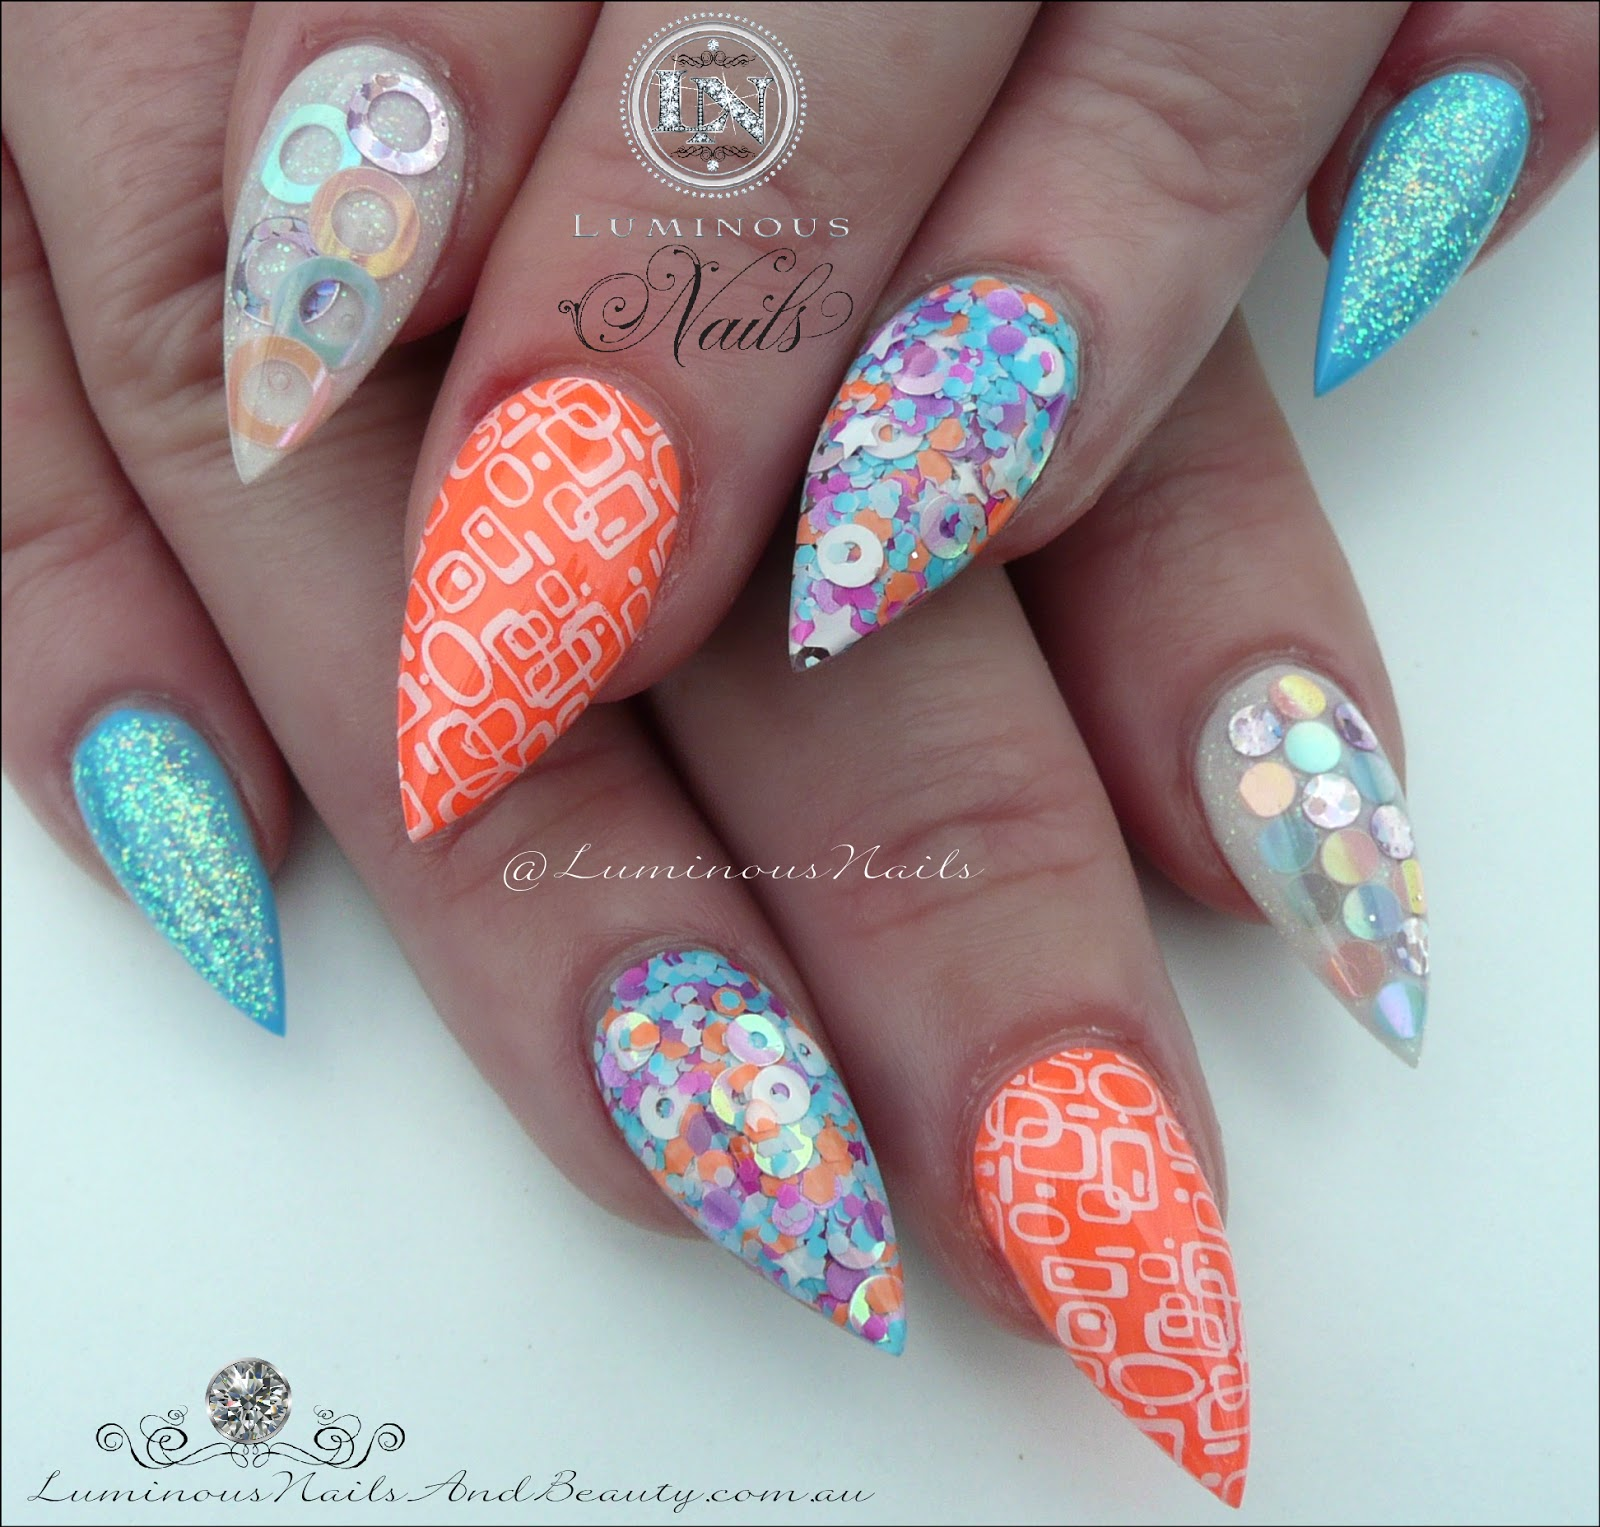 Luminous Nails Retro Inspired Acrylic Nails